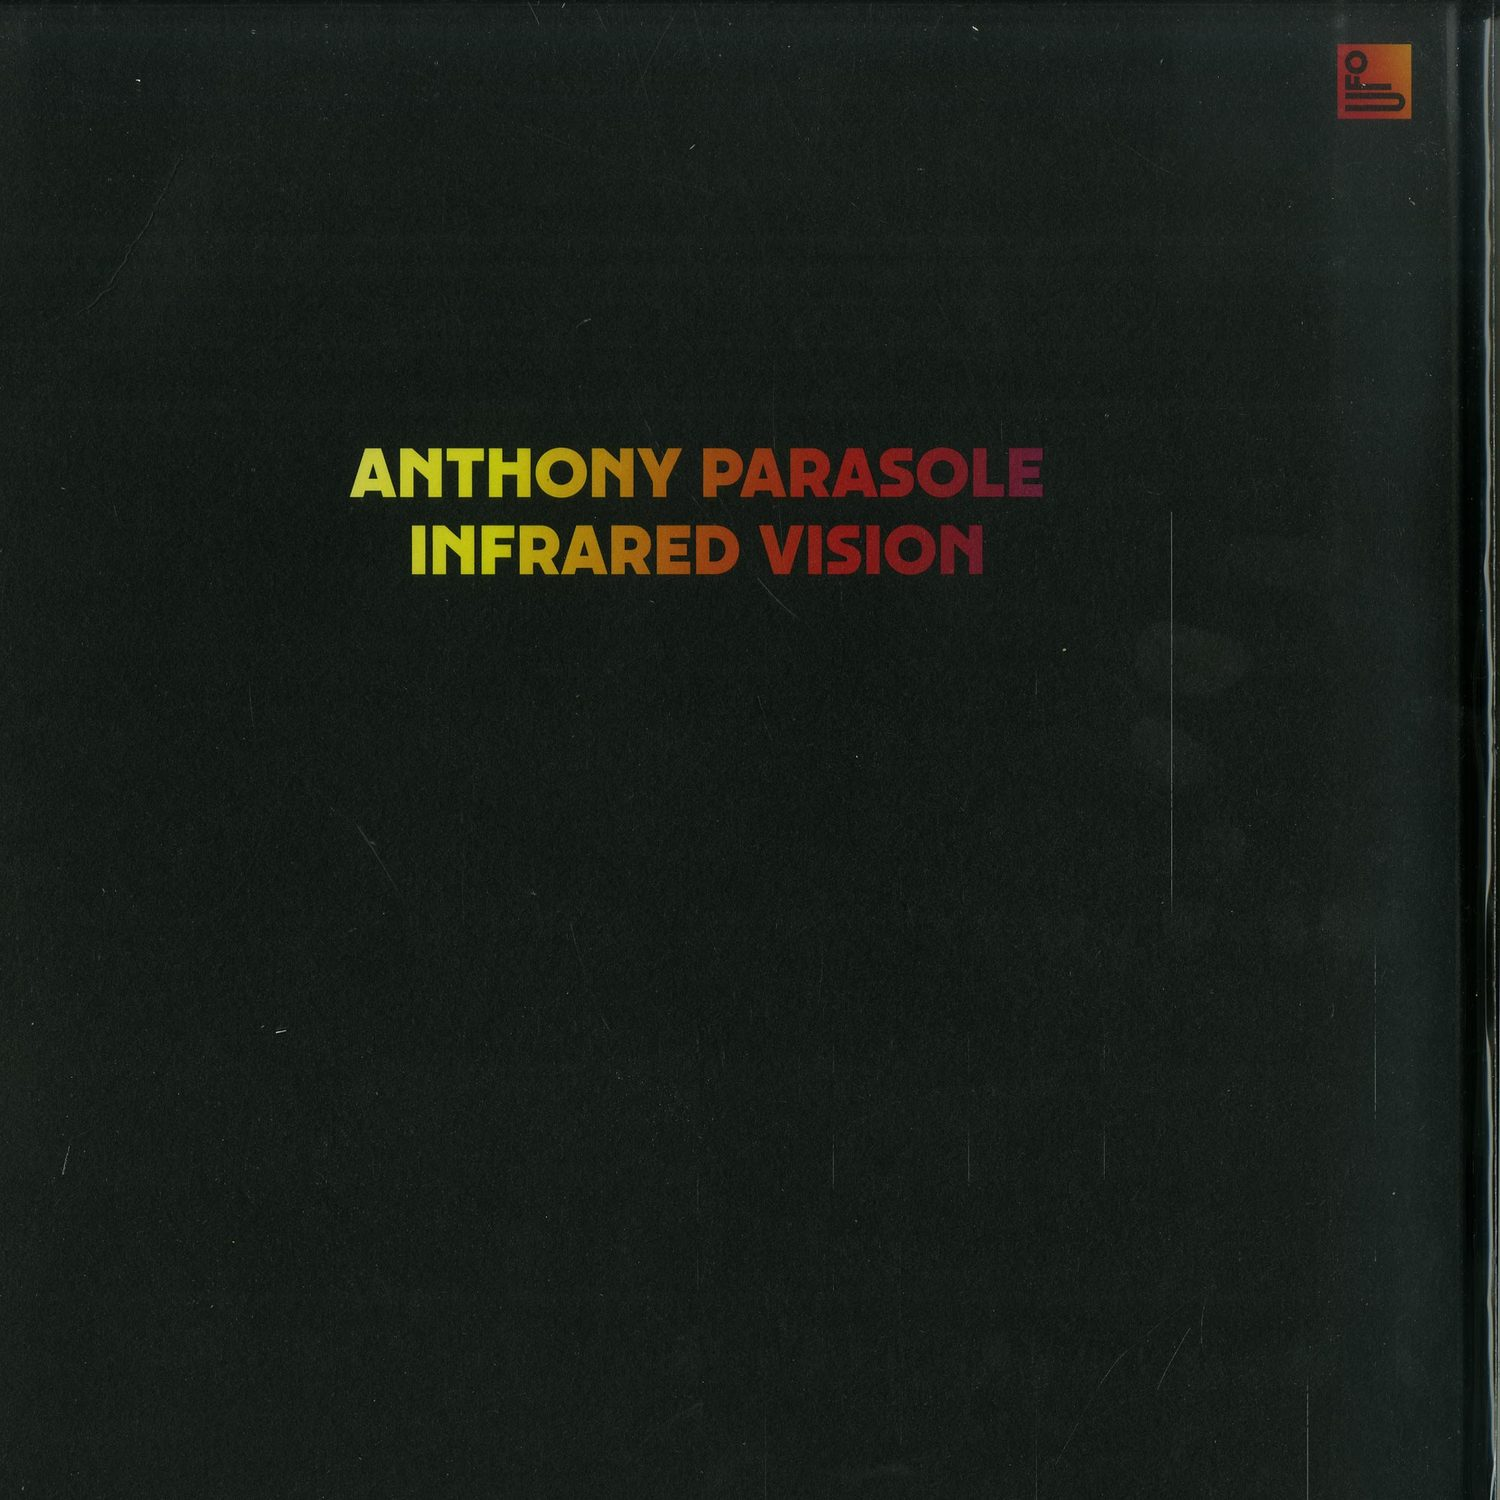 Anthony Parasole - INFRARED VISION